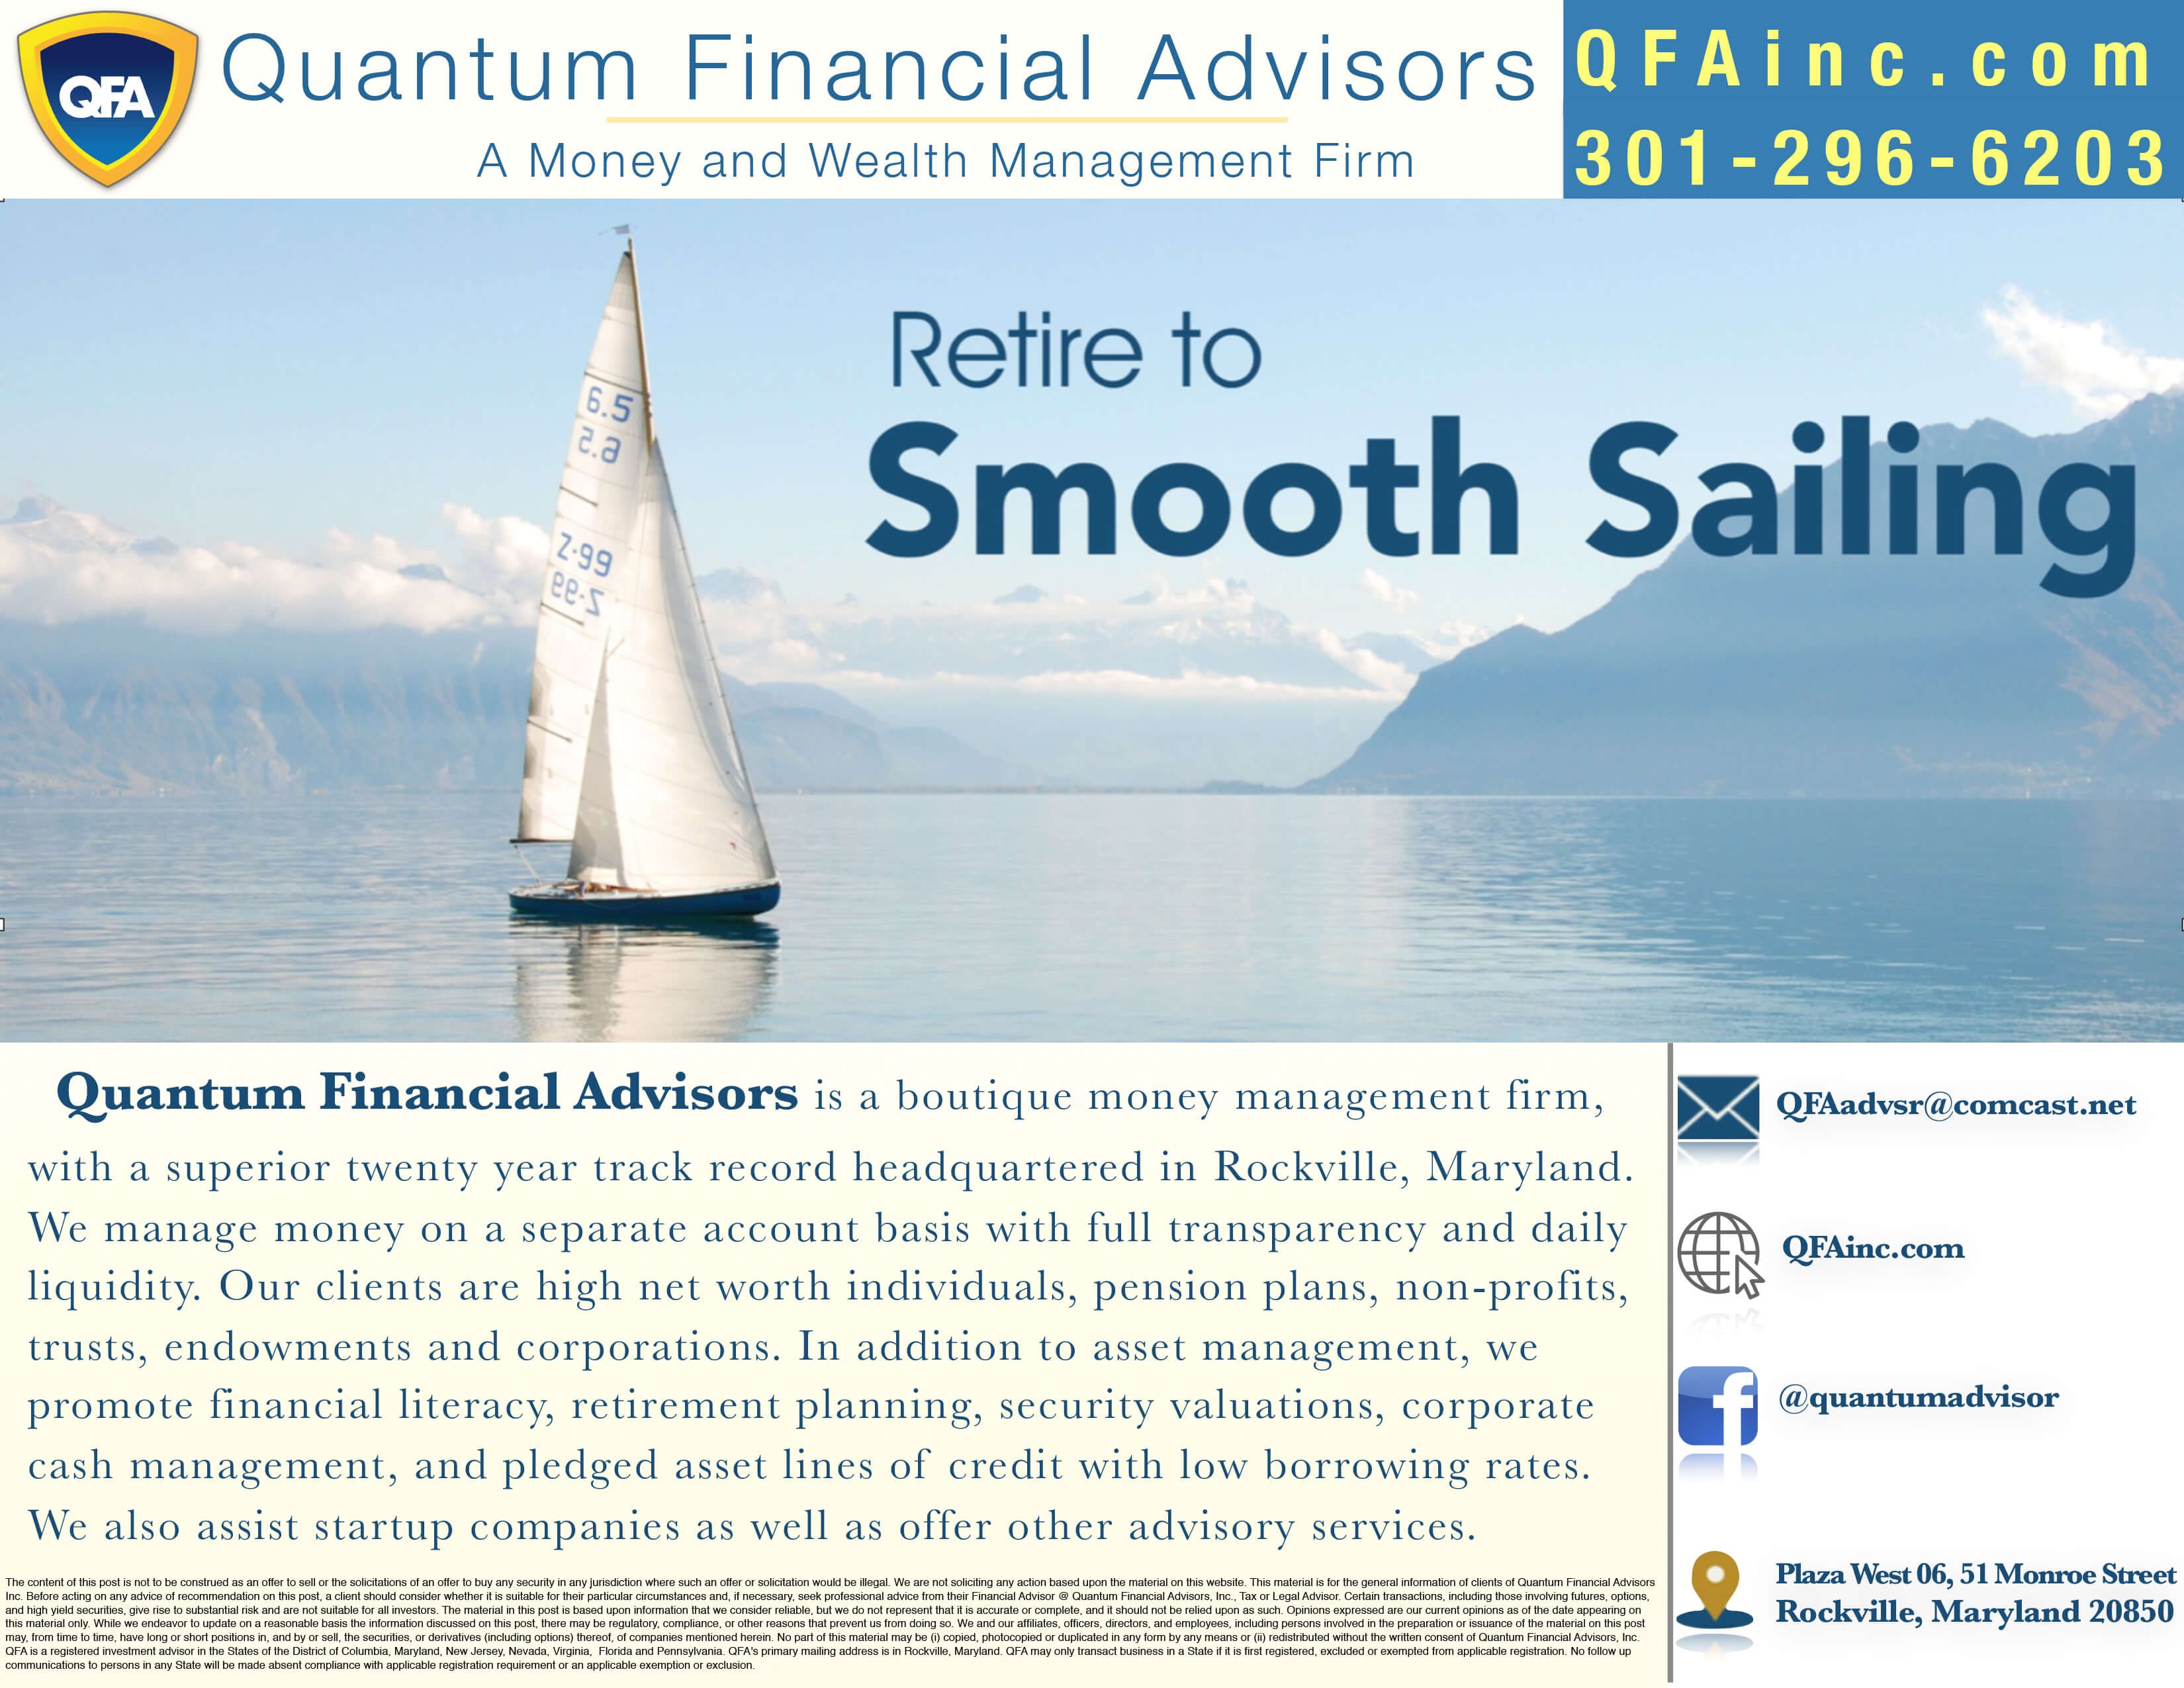 Quantum Financial Advisors Serving Deep Creek Lake MD